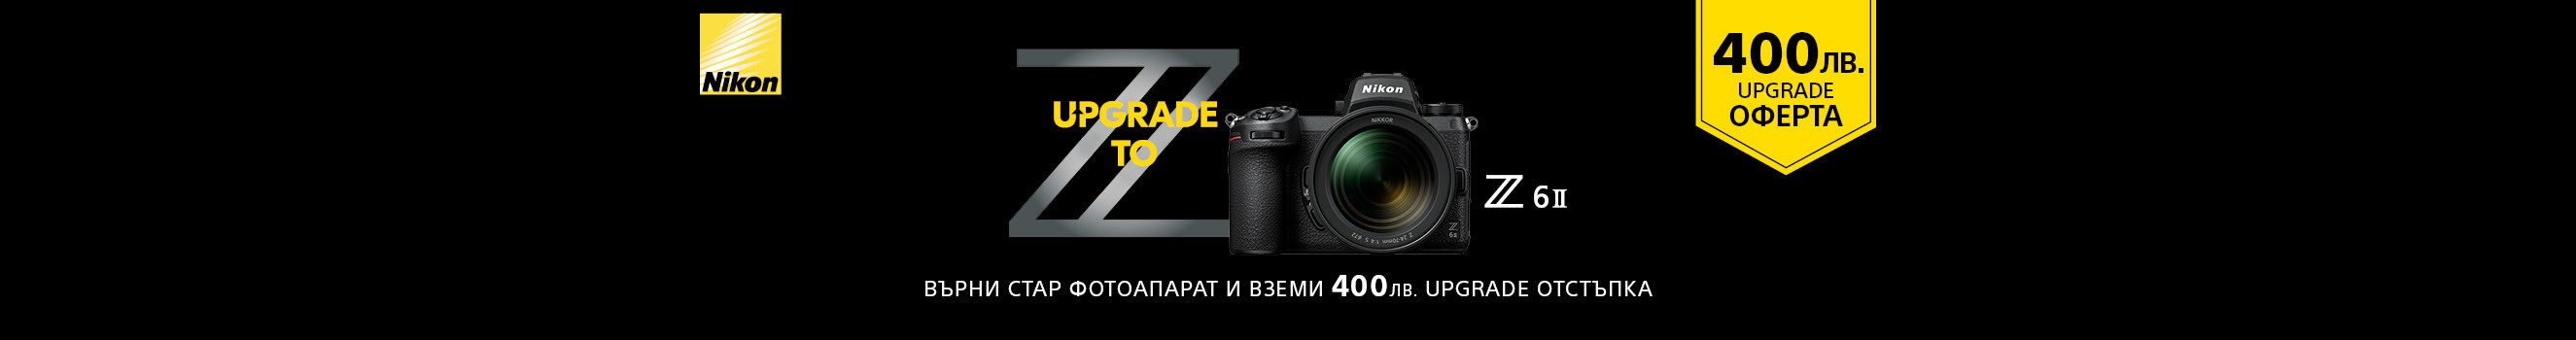 Get the New Nikon Z6 II and Z7 II with BGN 400 Discount